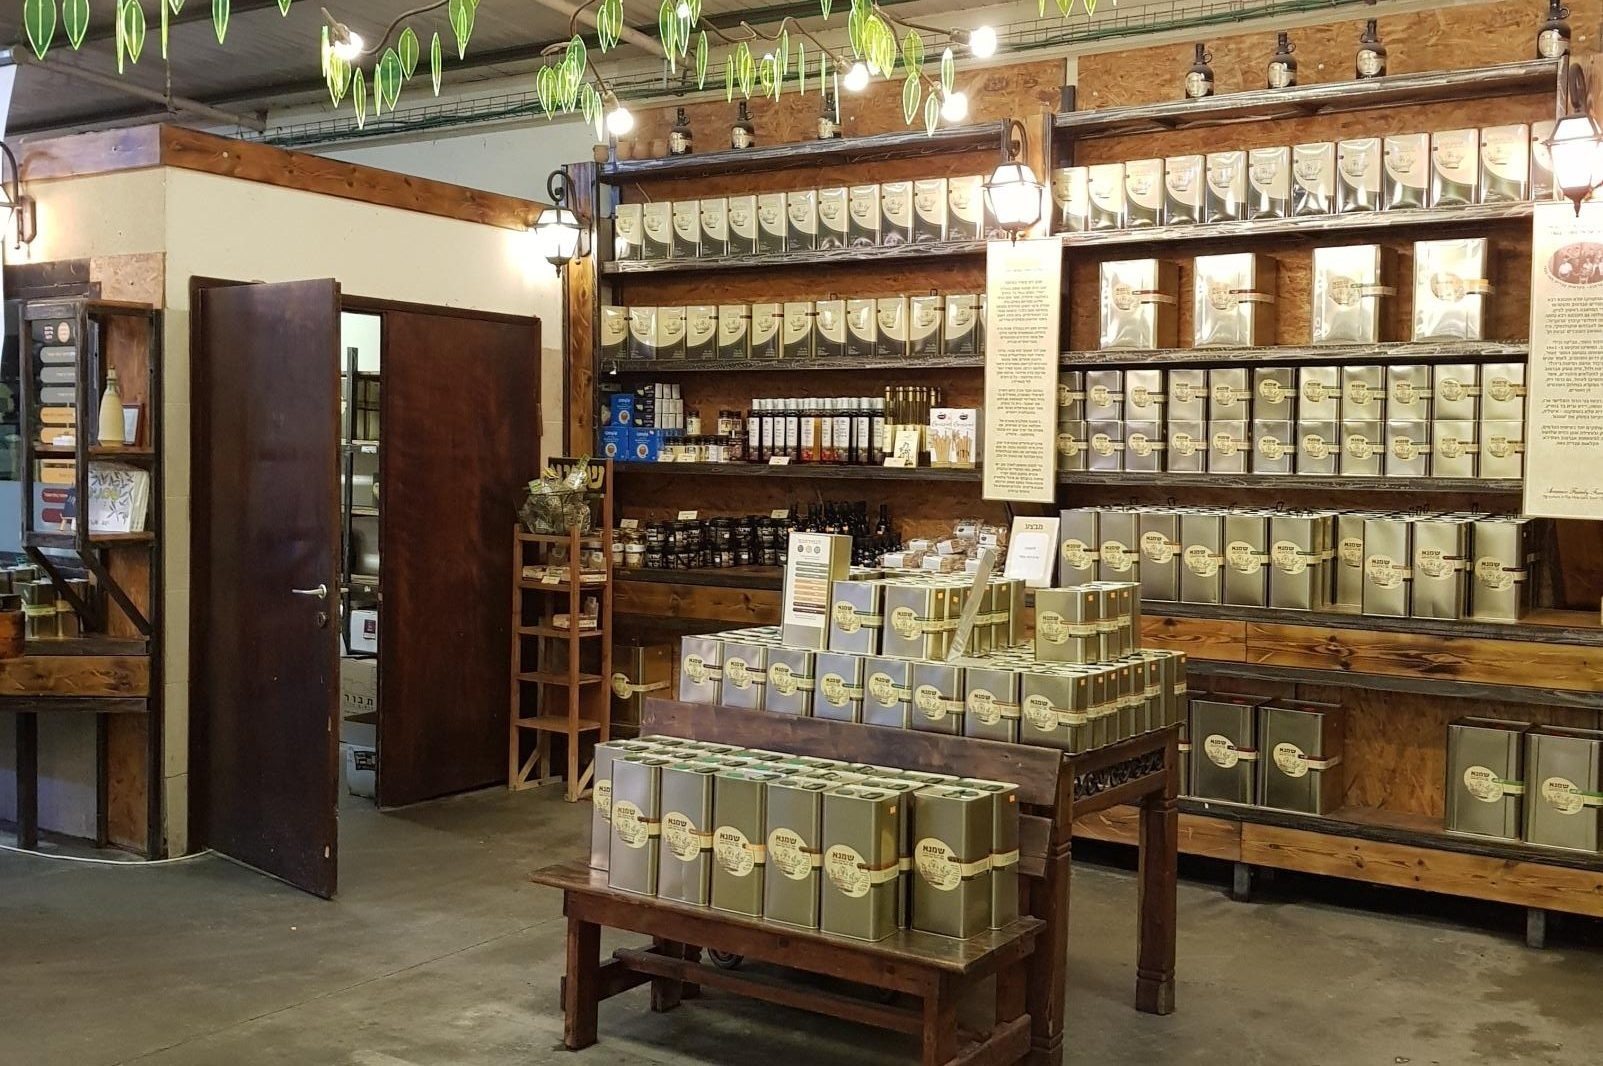 10 of the best boutique olive oil brands in Israel - ISRAEL21c